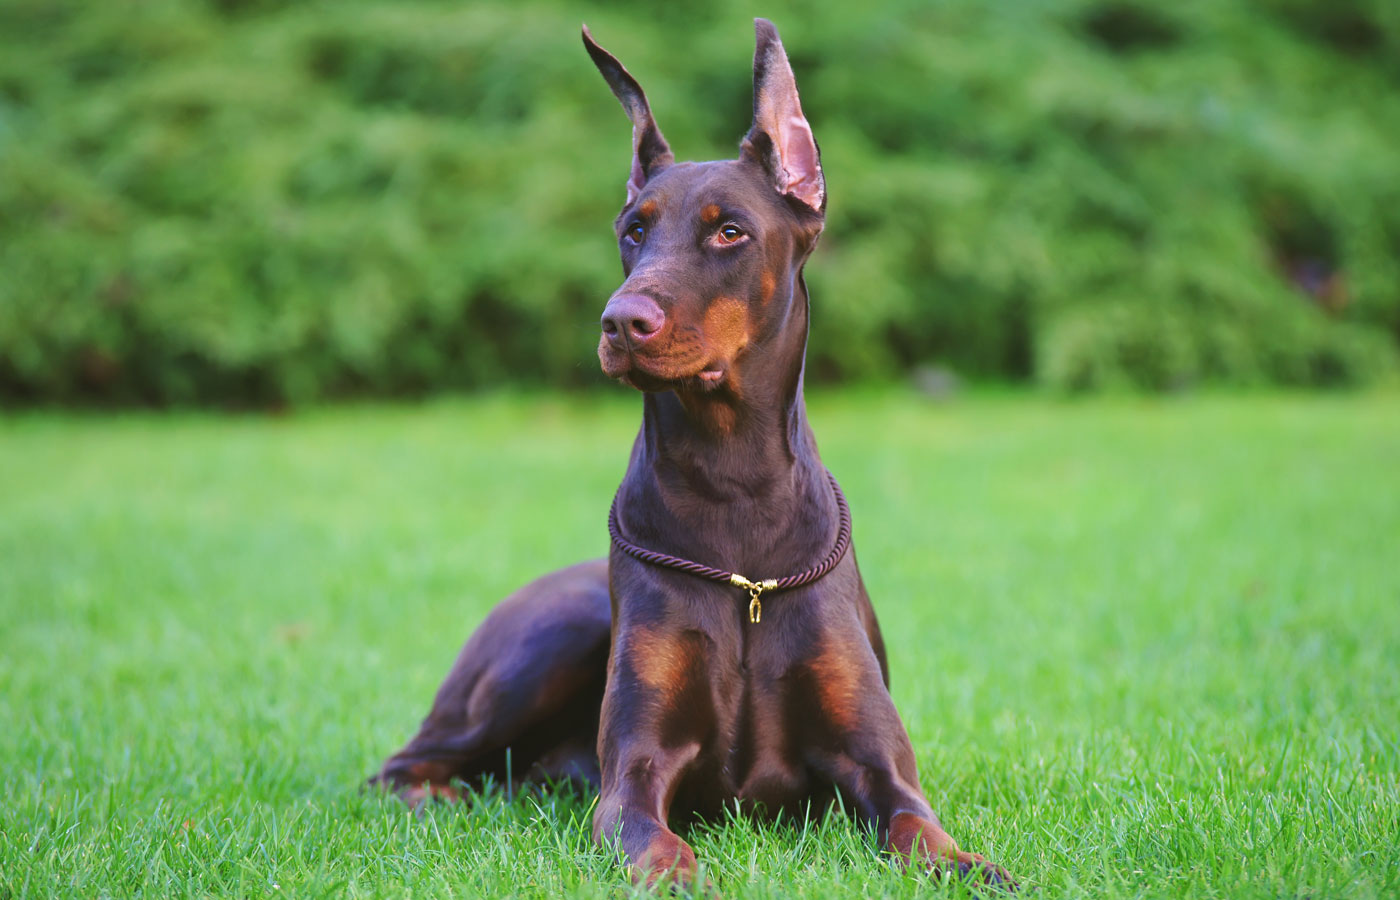 Obedient brown Doberman dog with cropped ears lying outdoors on a cut green grass in a city park